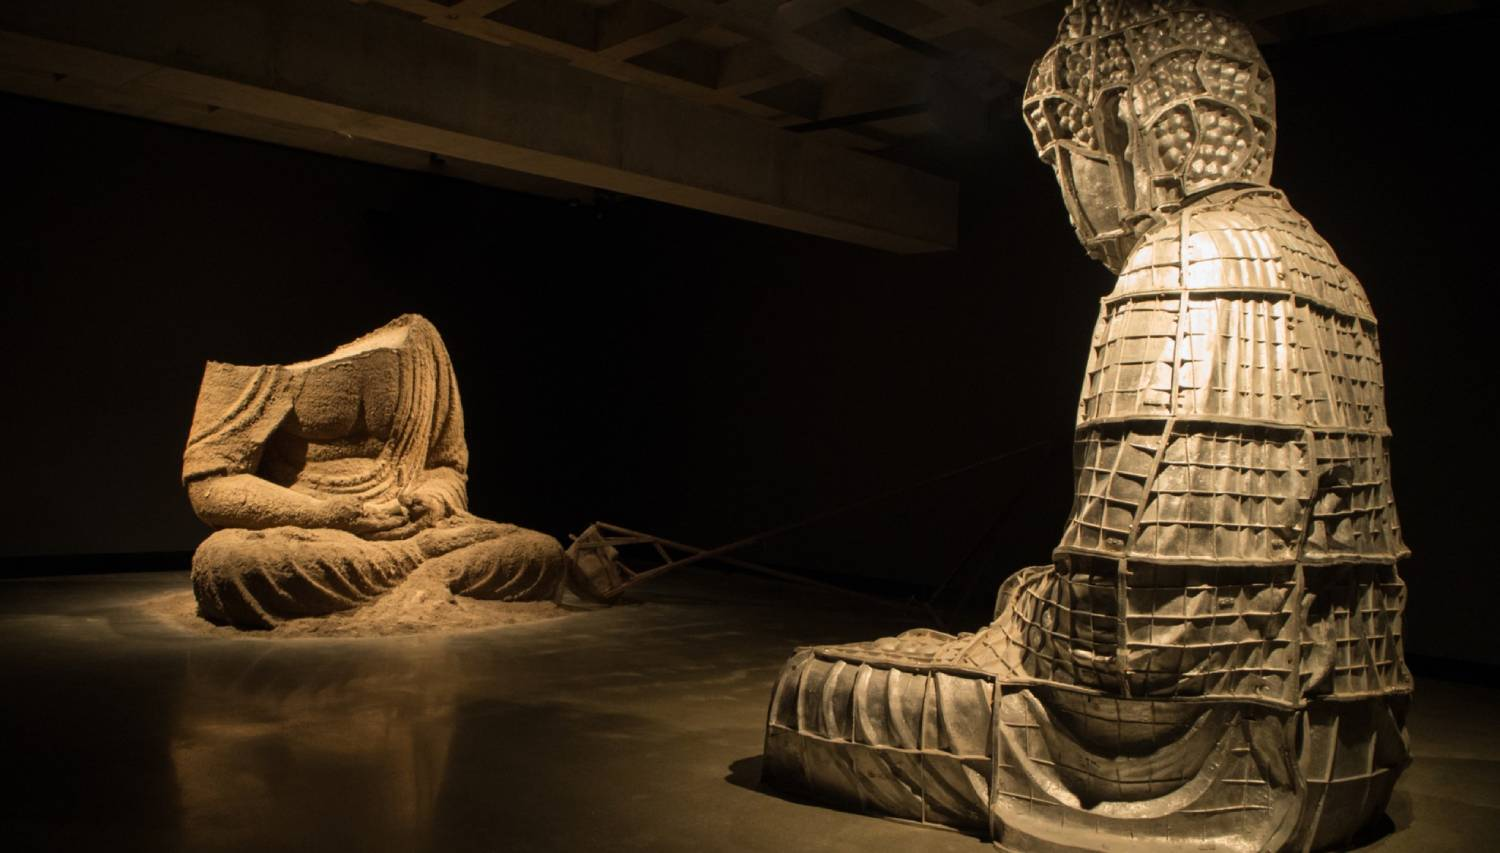 Museum of Old and New Art (MONA) - Things To Do In Hobart